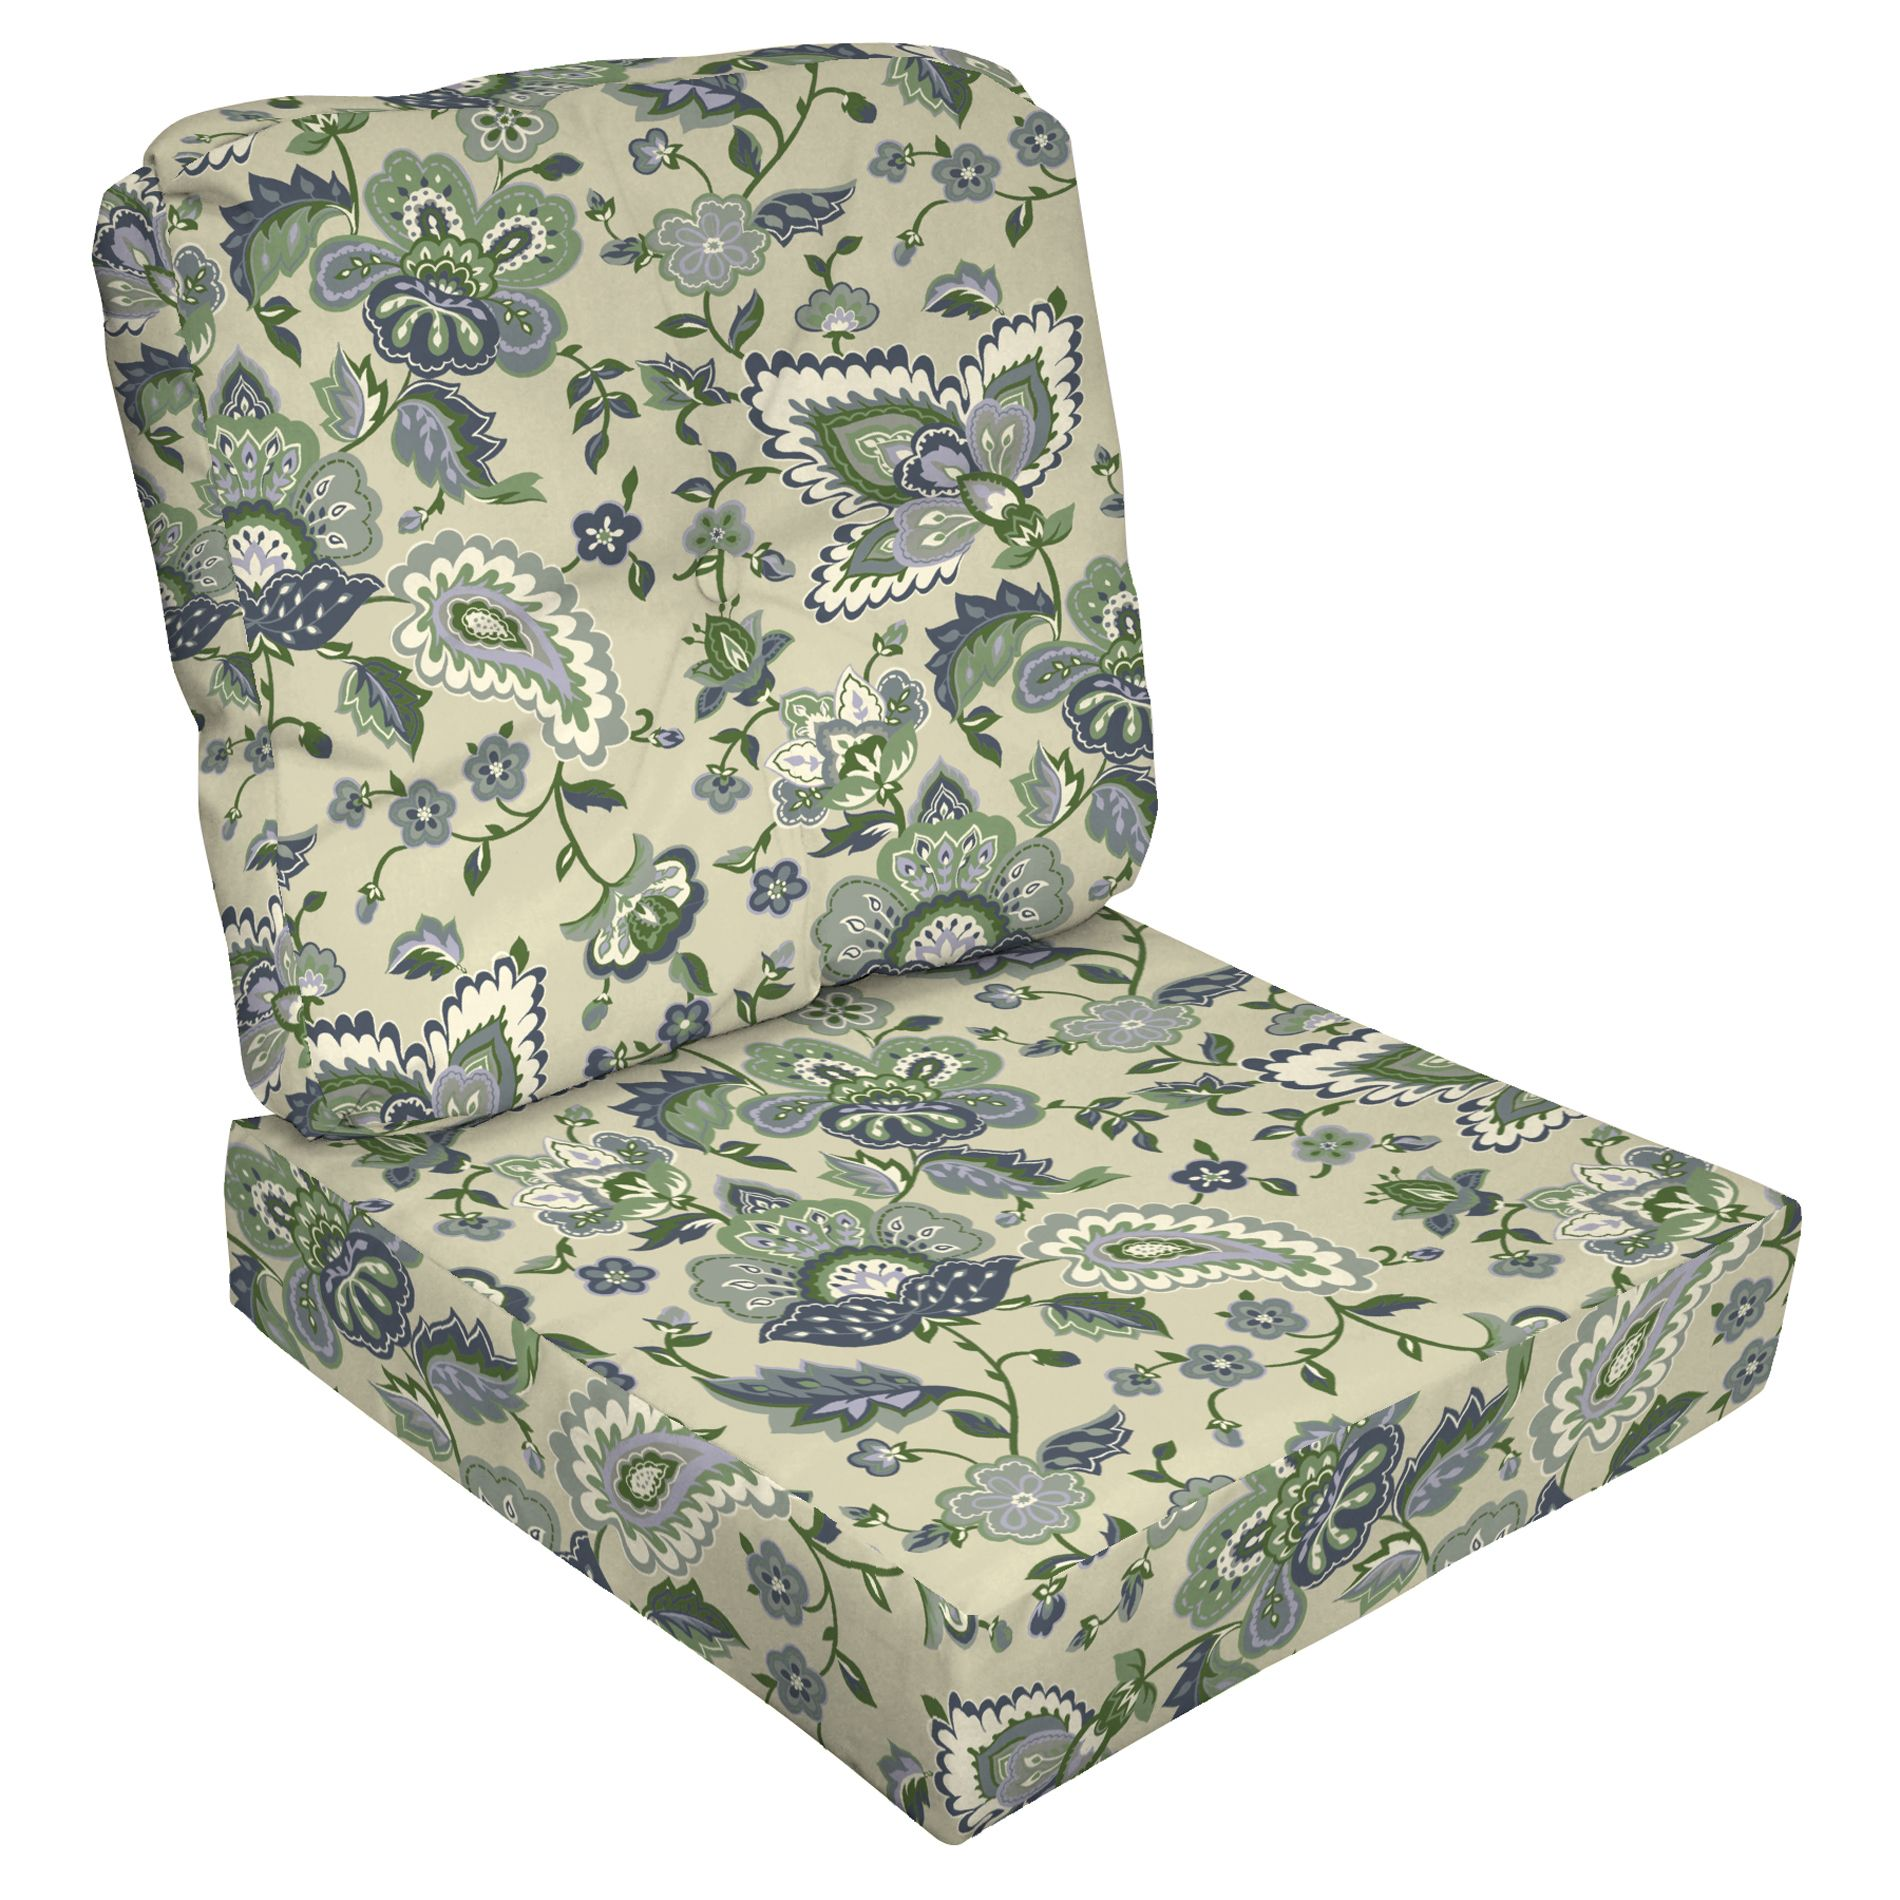 1 piece patio chair cushions outdoor wicker with ottoman jaclyn smith today nathan 2 deep seat